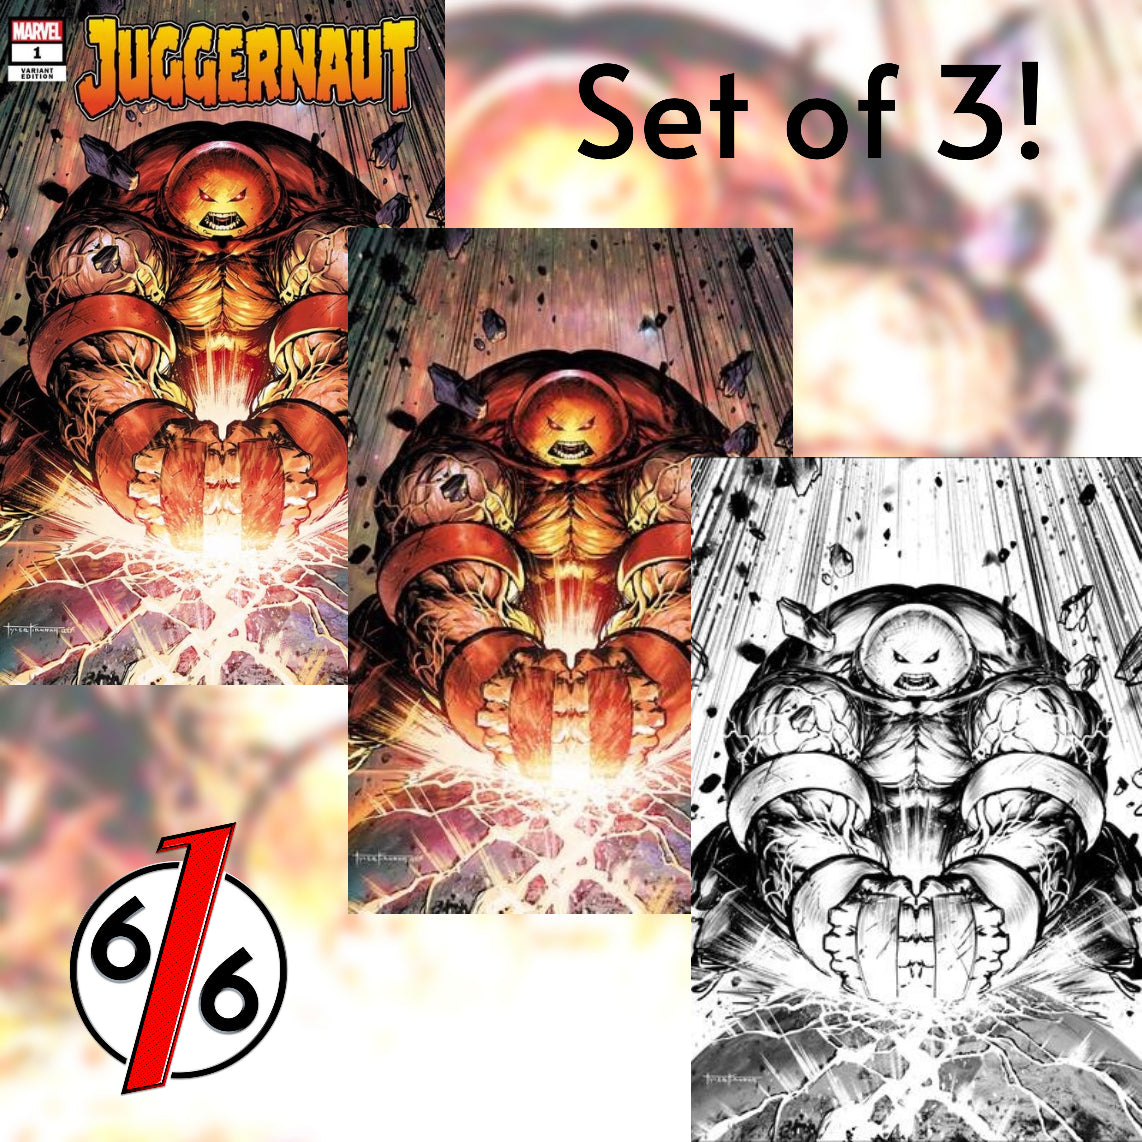 JUGGERNAUT #1 TYLER KIRKHAM SET OF 3 Exclusive Variant Ltd 1000